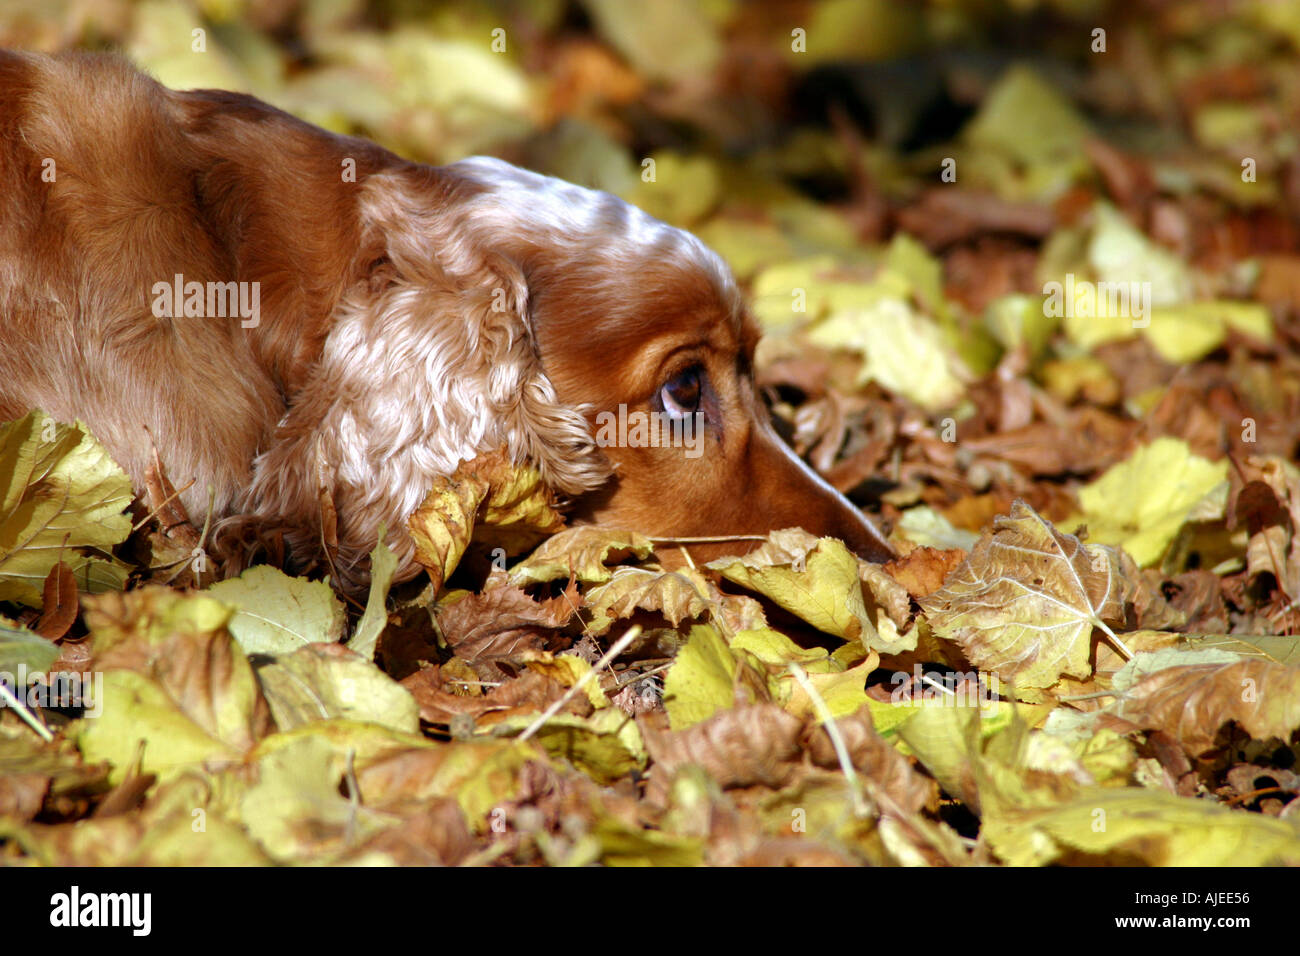 Cocker spaniel in autumn leaves - Stock Image